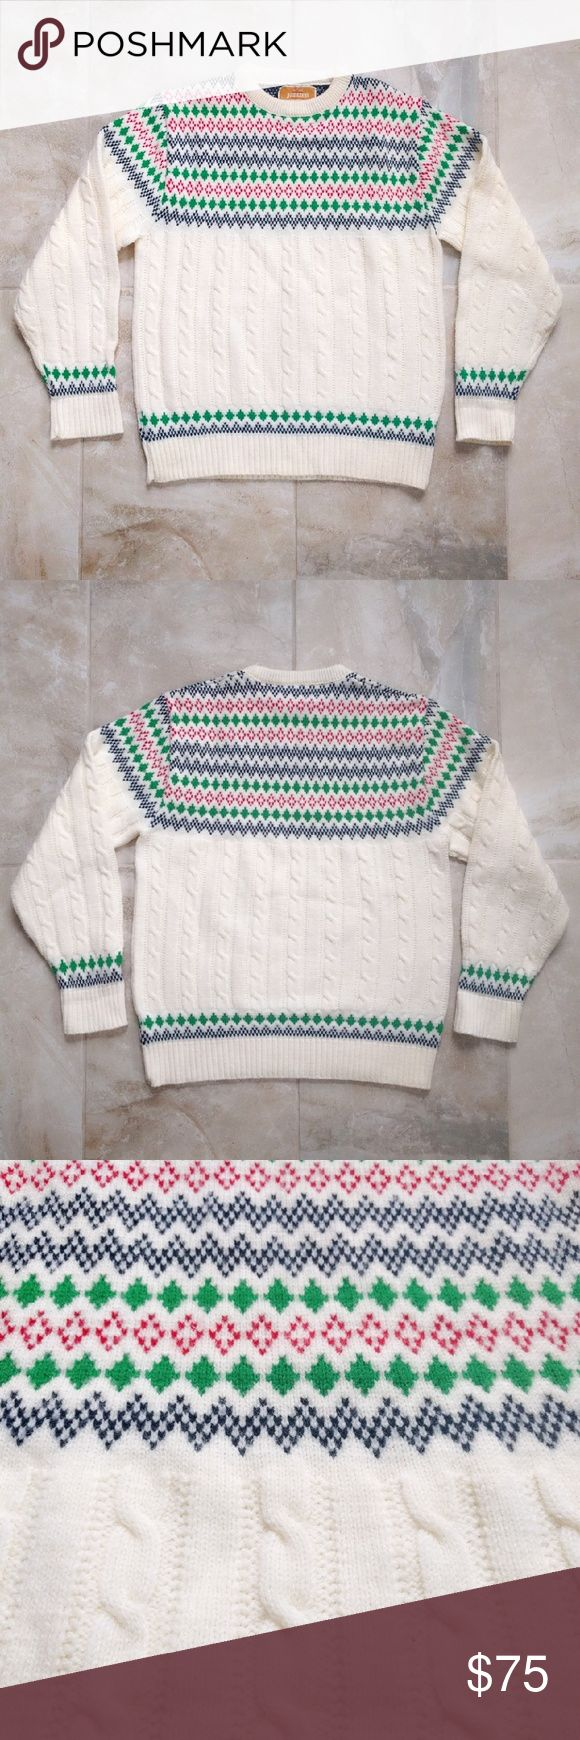 """VTG Men's Jantzen FAIR ISLE Nordic Ski Sweater L An amazingly modern vintage Jantzen intarsia acrylic crewneck sweater. Blue, red, and green diamond zigzag design. Very rare! Cable knit on main body. In near-mint vintage condition (9.999/10). No stains or wear. Comes from a smoke-free home.  SIZE: Men's Large (best for size 40). BUST: 40"""". SHOULDER: 16.5"""". SLEEVE: 24"""". LENGTH: 26"""". Jantzen Sweaters Crewneck"""